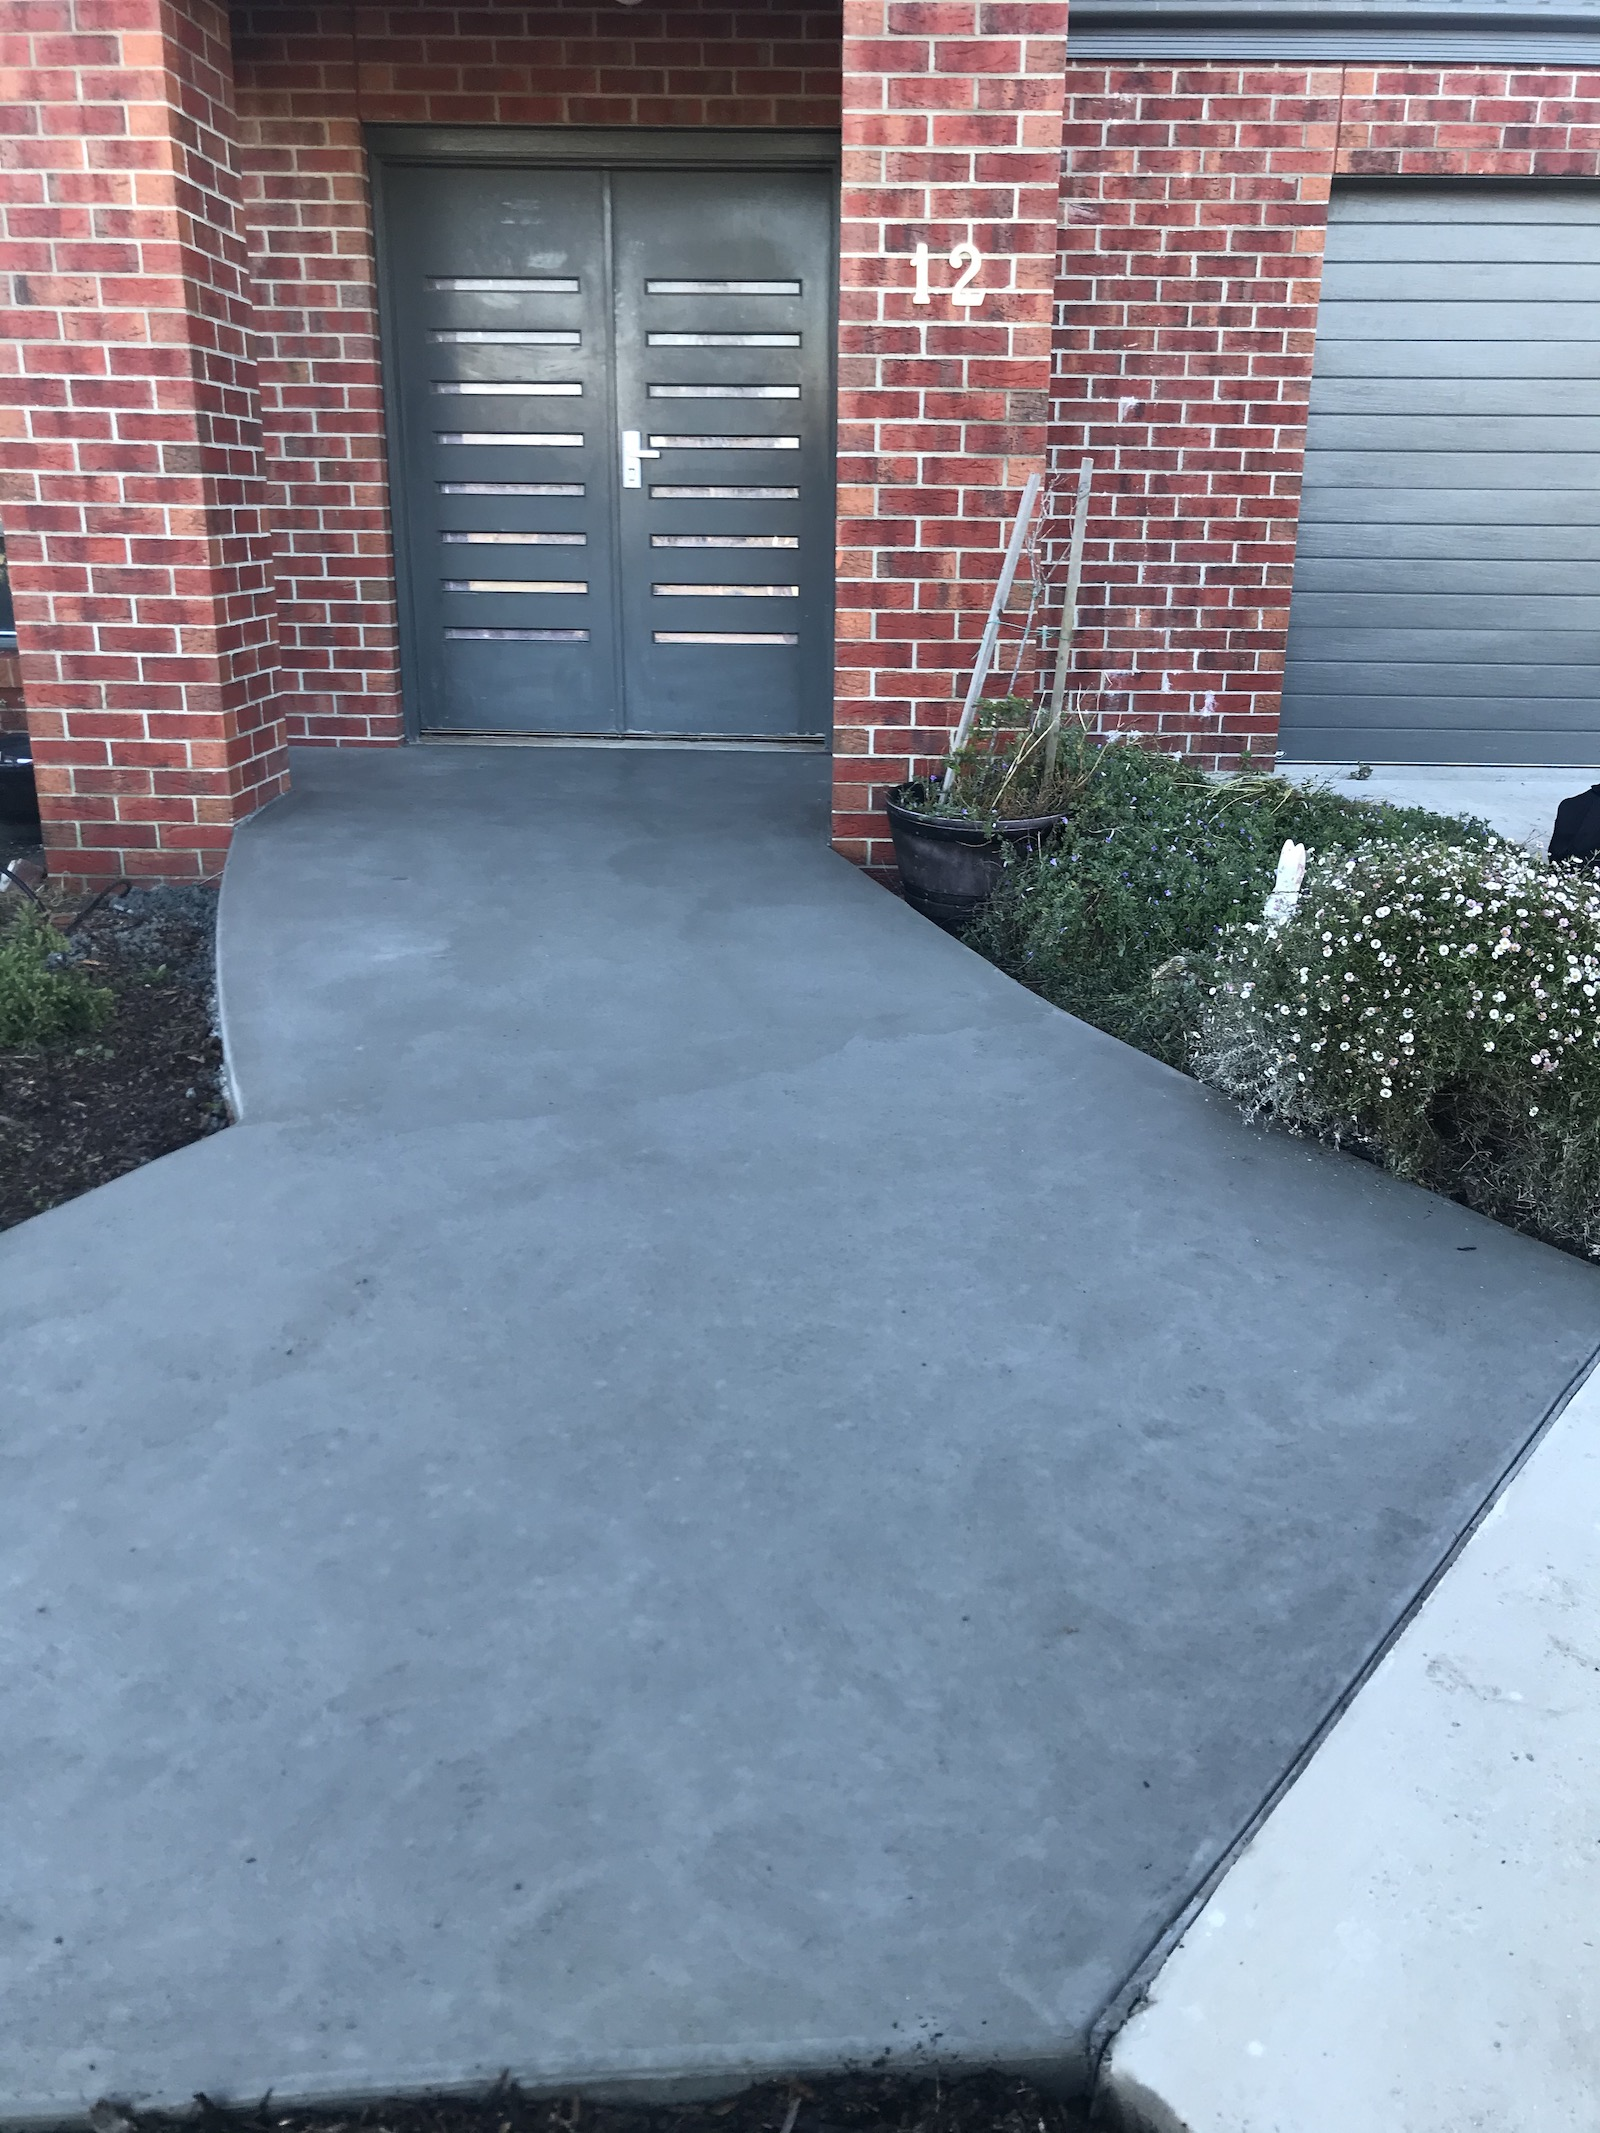 Construction works management to increase access to the homes of elderly or disabled - improved home access for my aged care clients and NDIS participants.